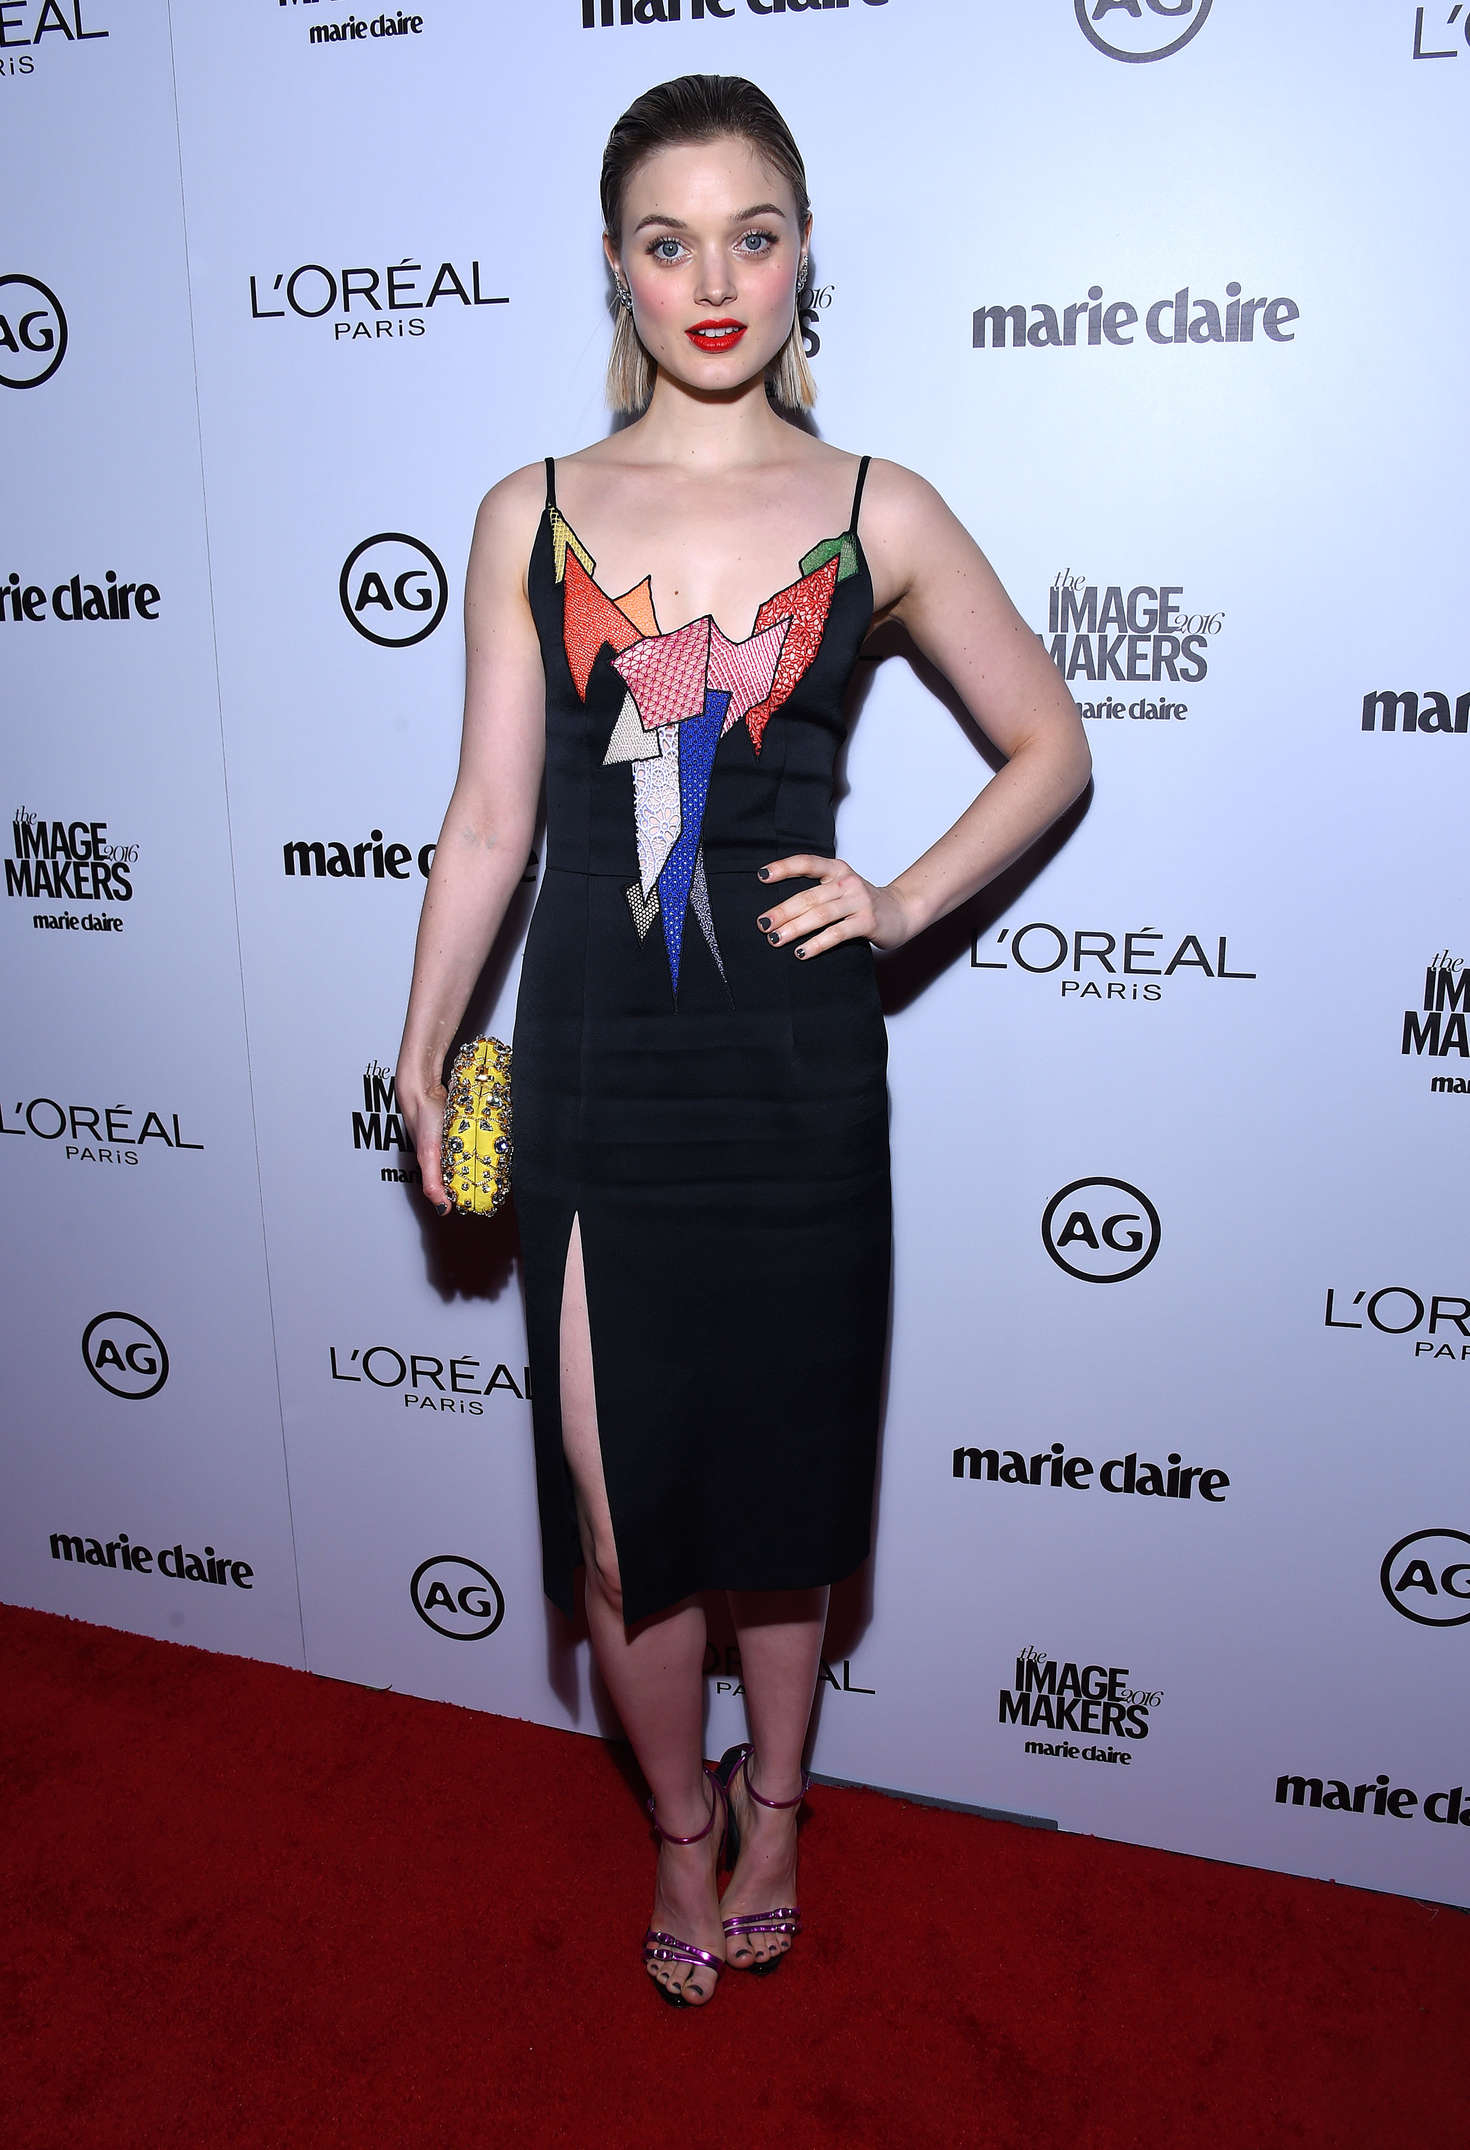 Bella Heathcote Inaugural Image Maker Awards hosted by Marie Claire in Los Angeles